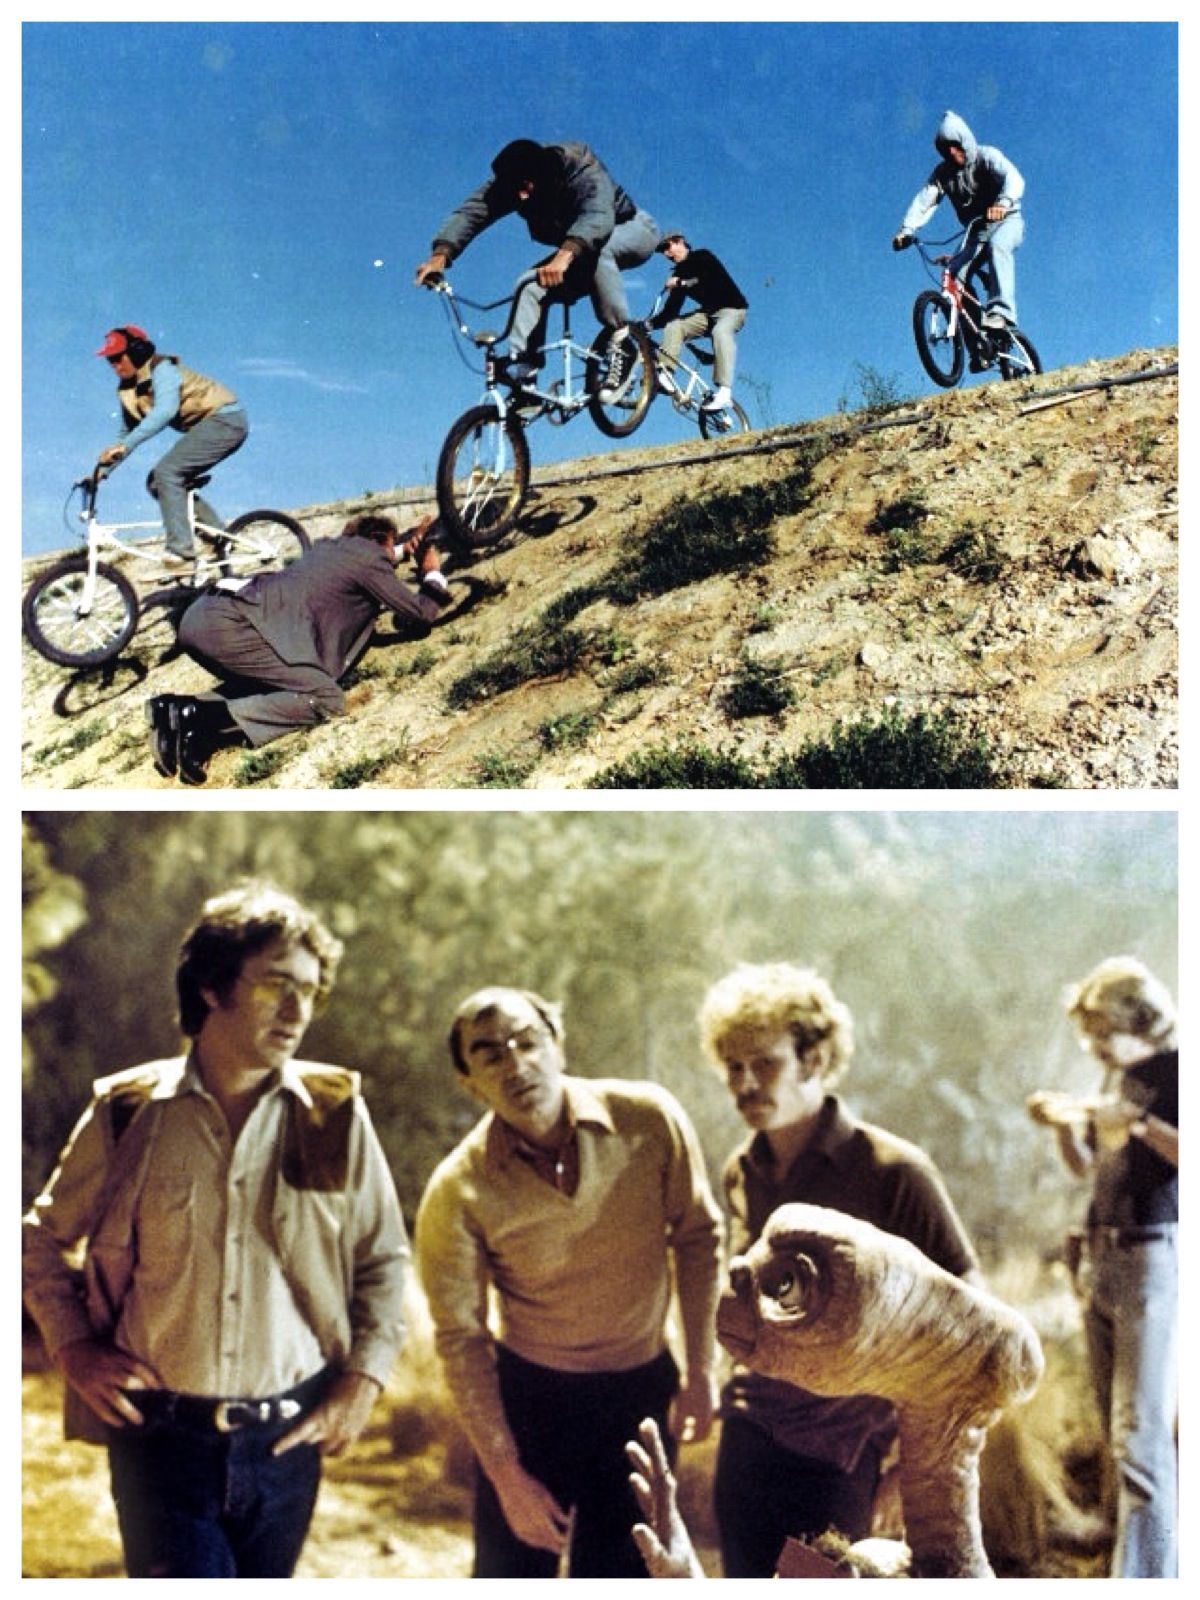 E.T. - 1982 - Top photo: Notice the photographer on his knees, taking photos. More about this photo on narrative.ly  Bottom: Steven Speilberg directing.